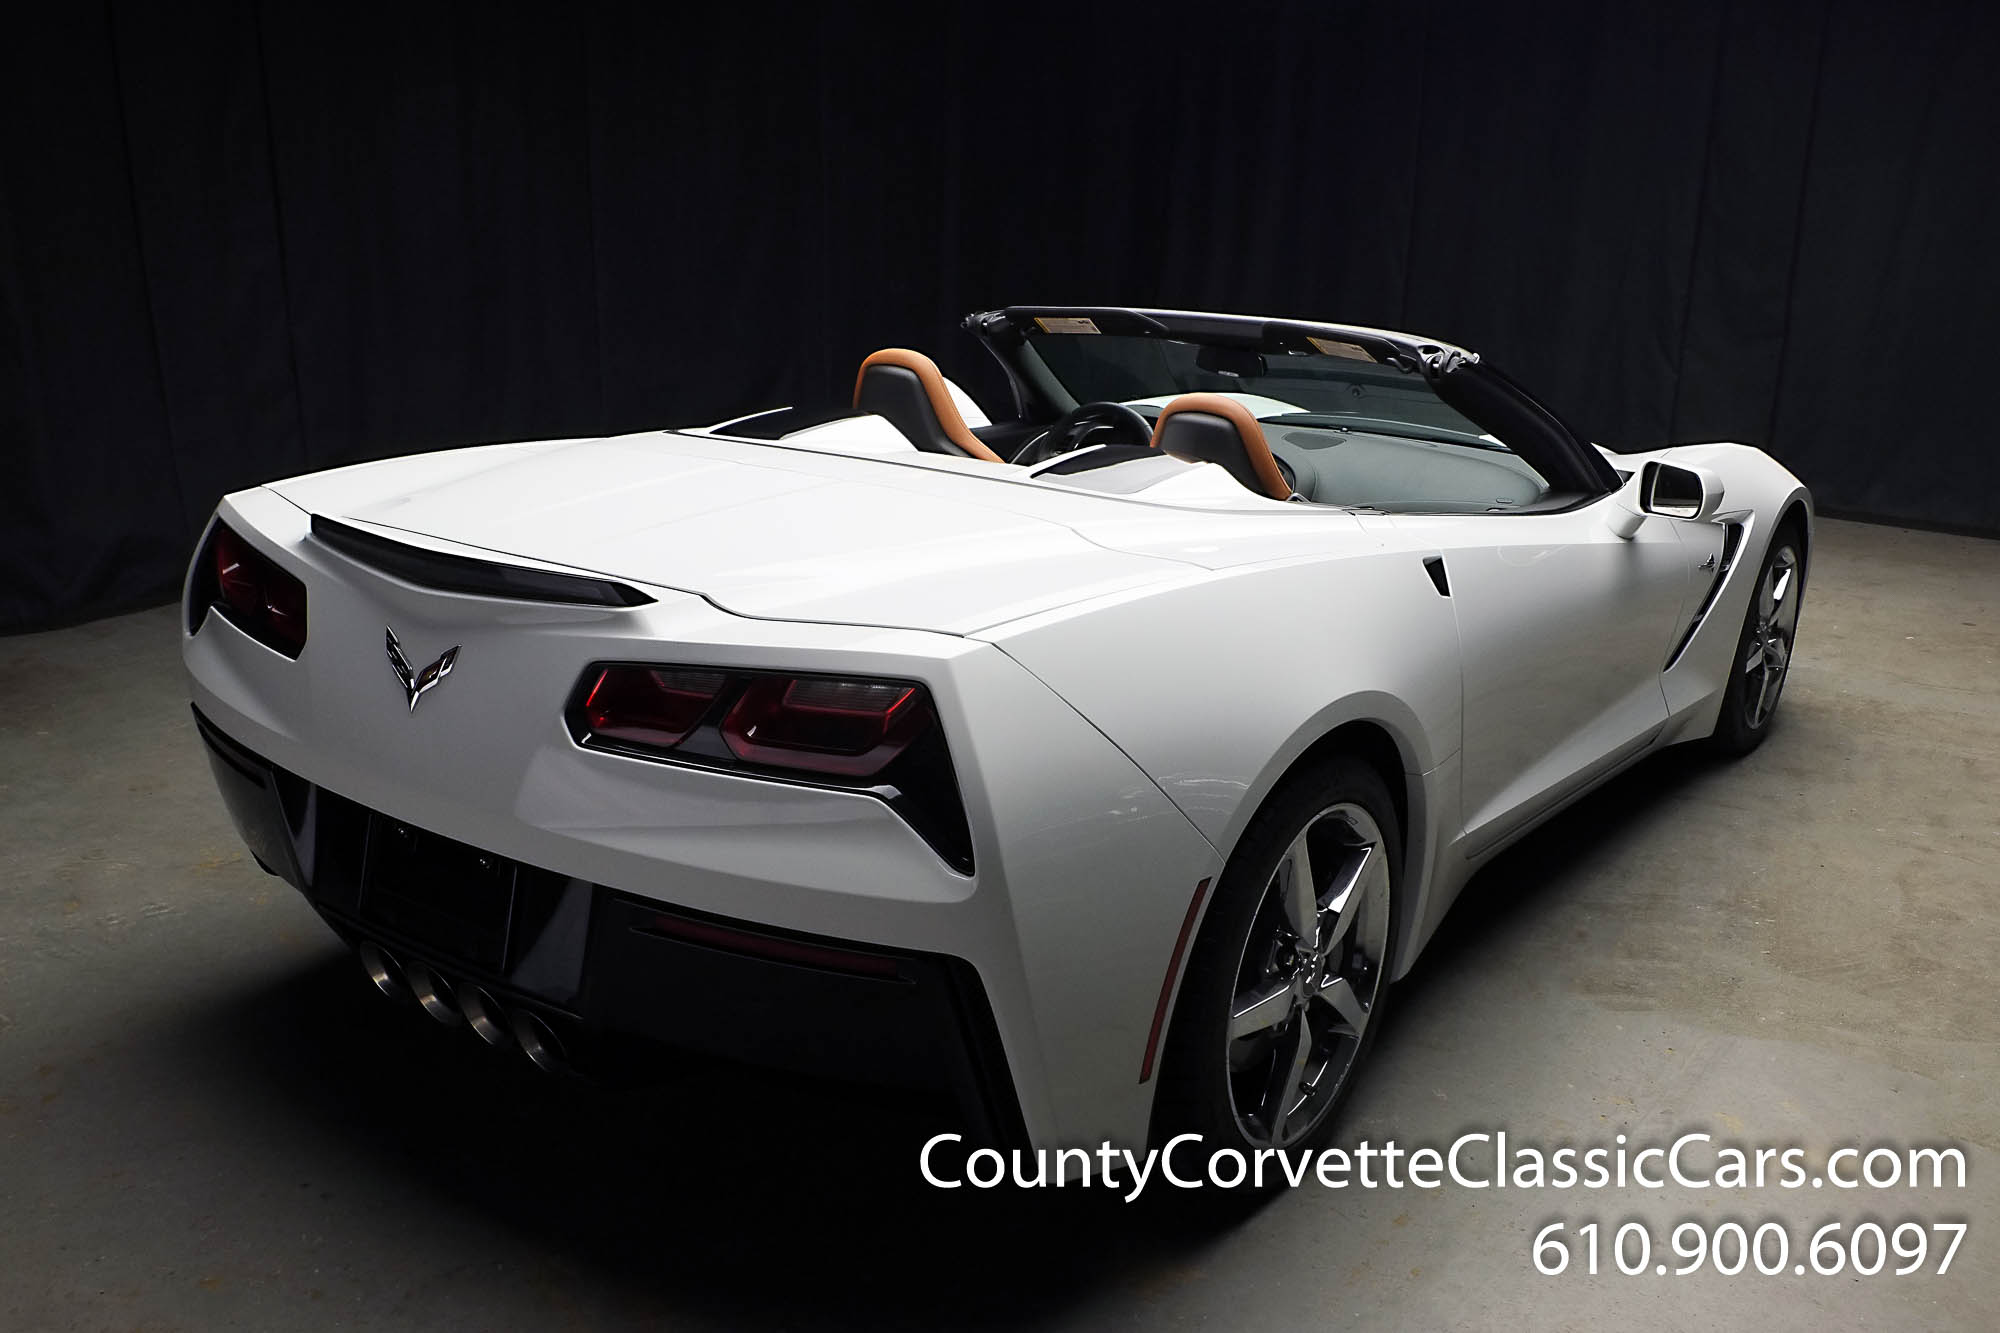 2014-Corvette-Stingray-Convertible-40.jpg